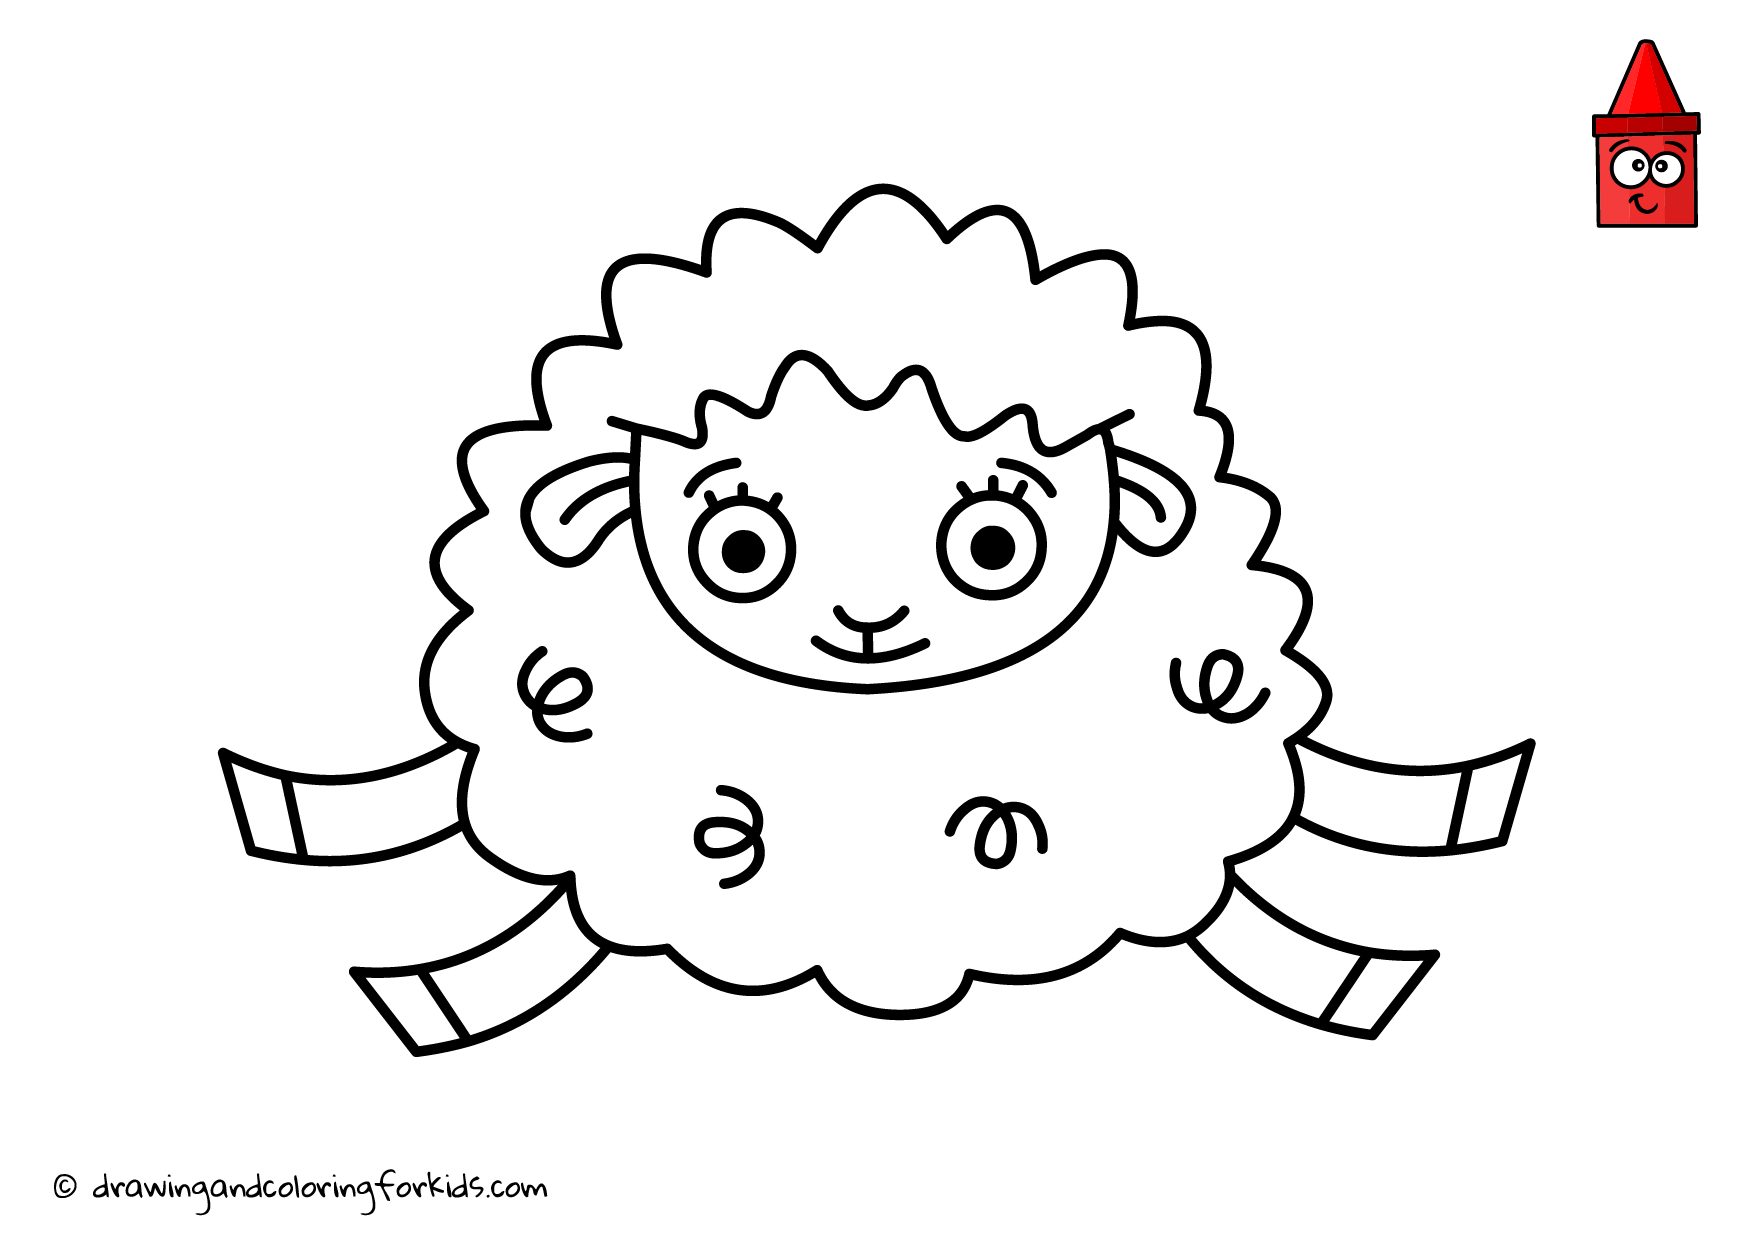 Coloring Page - Sheep | Coloring Pages For Kids | Pinterest